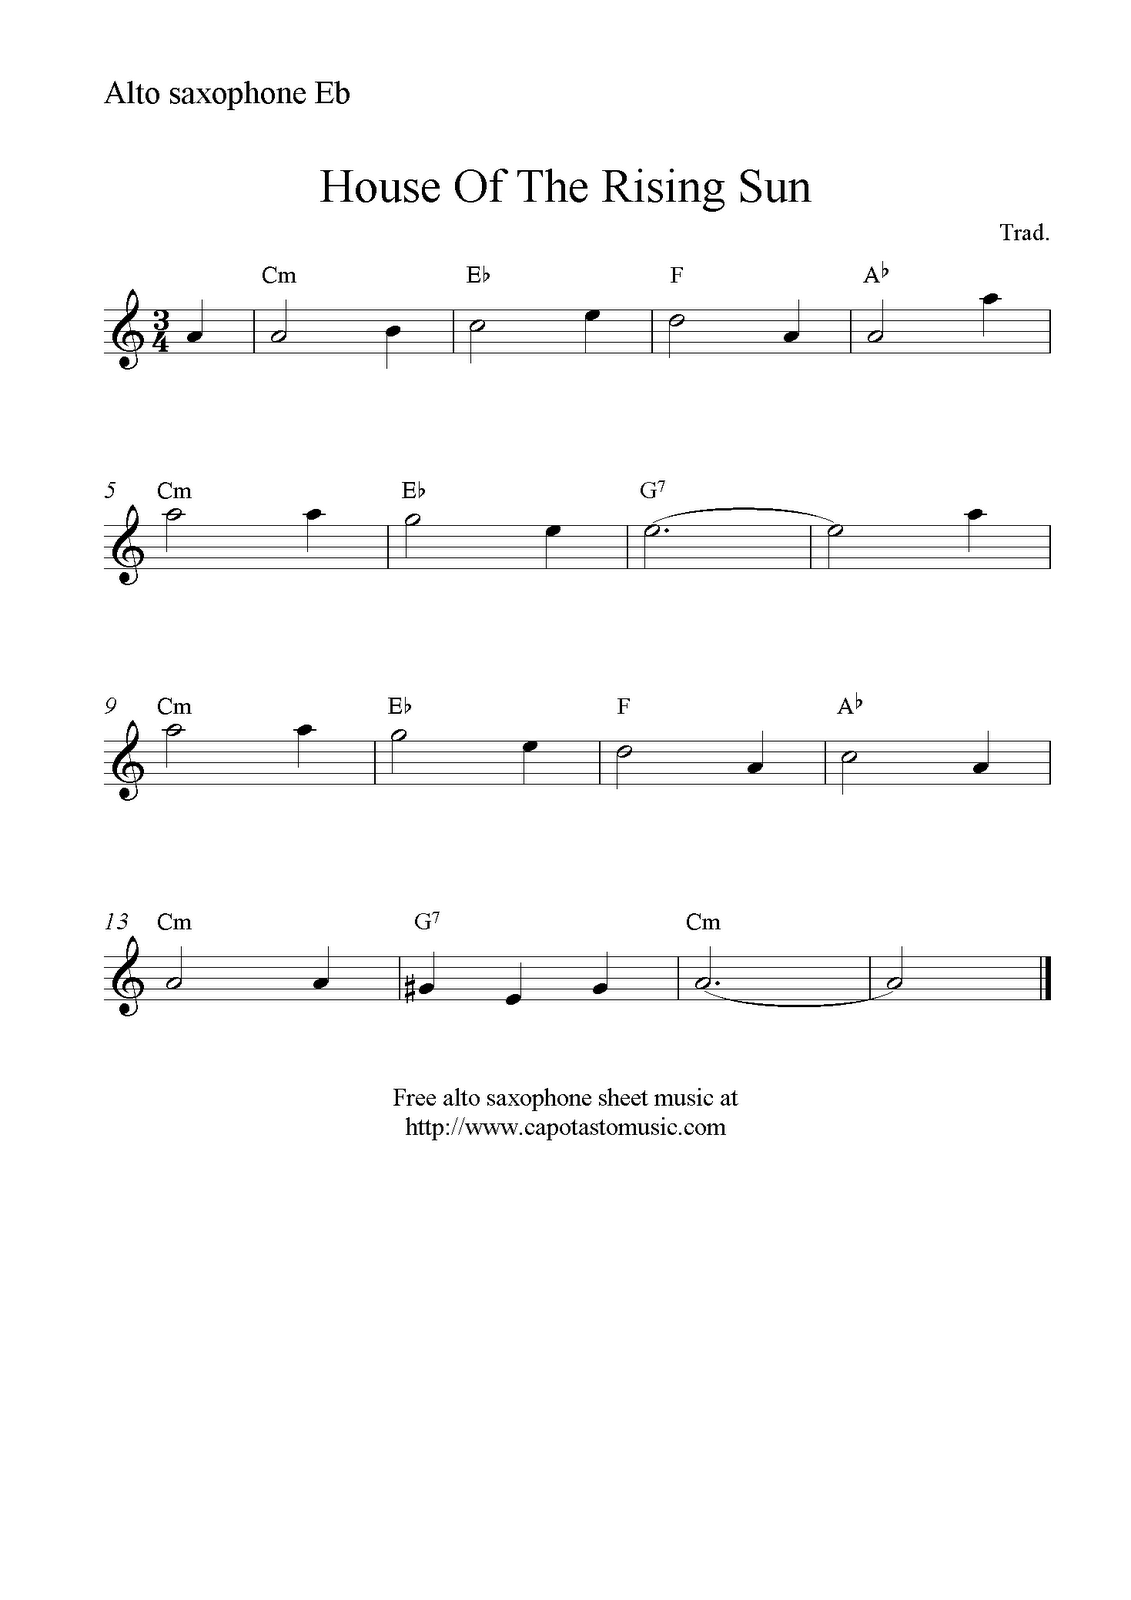 alto sax sheet music free download